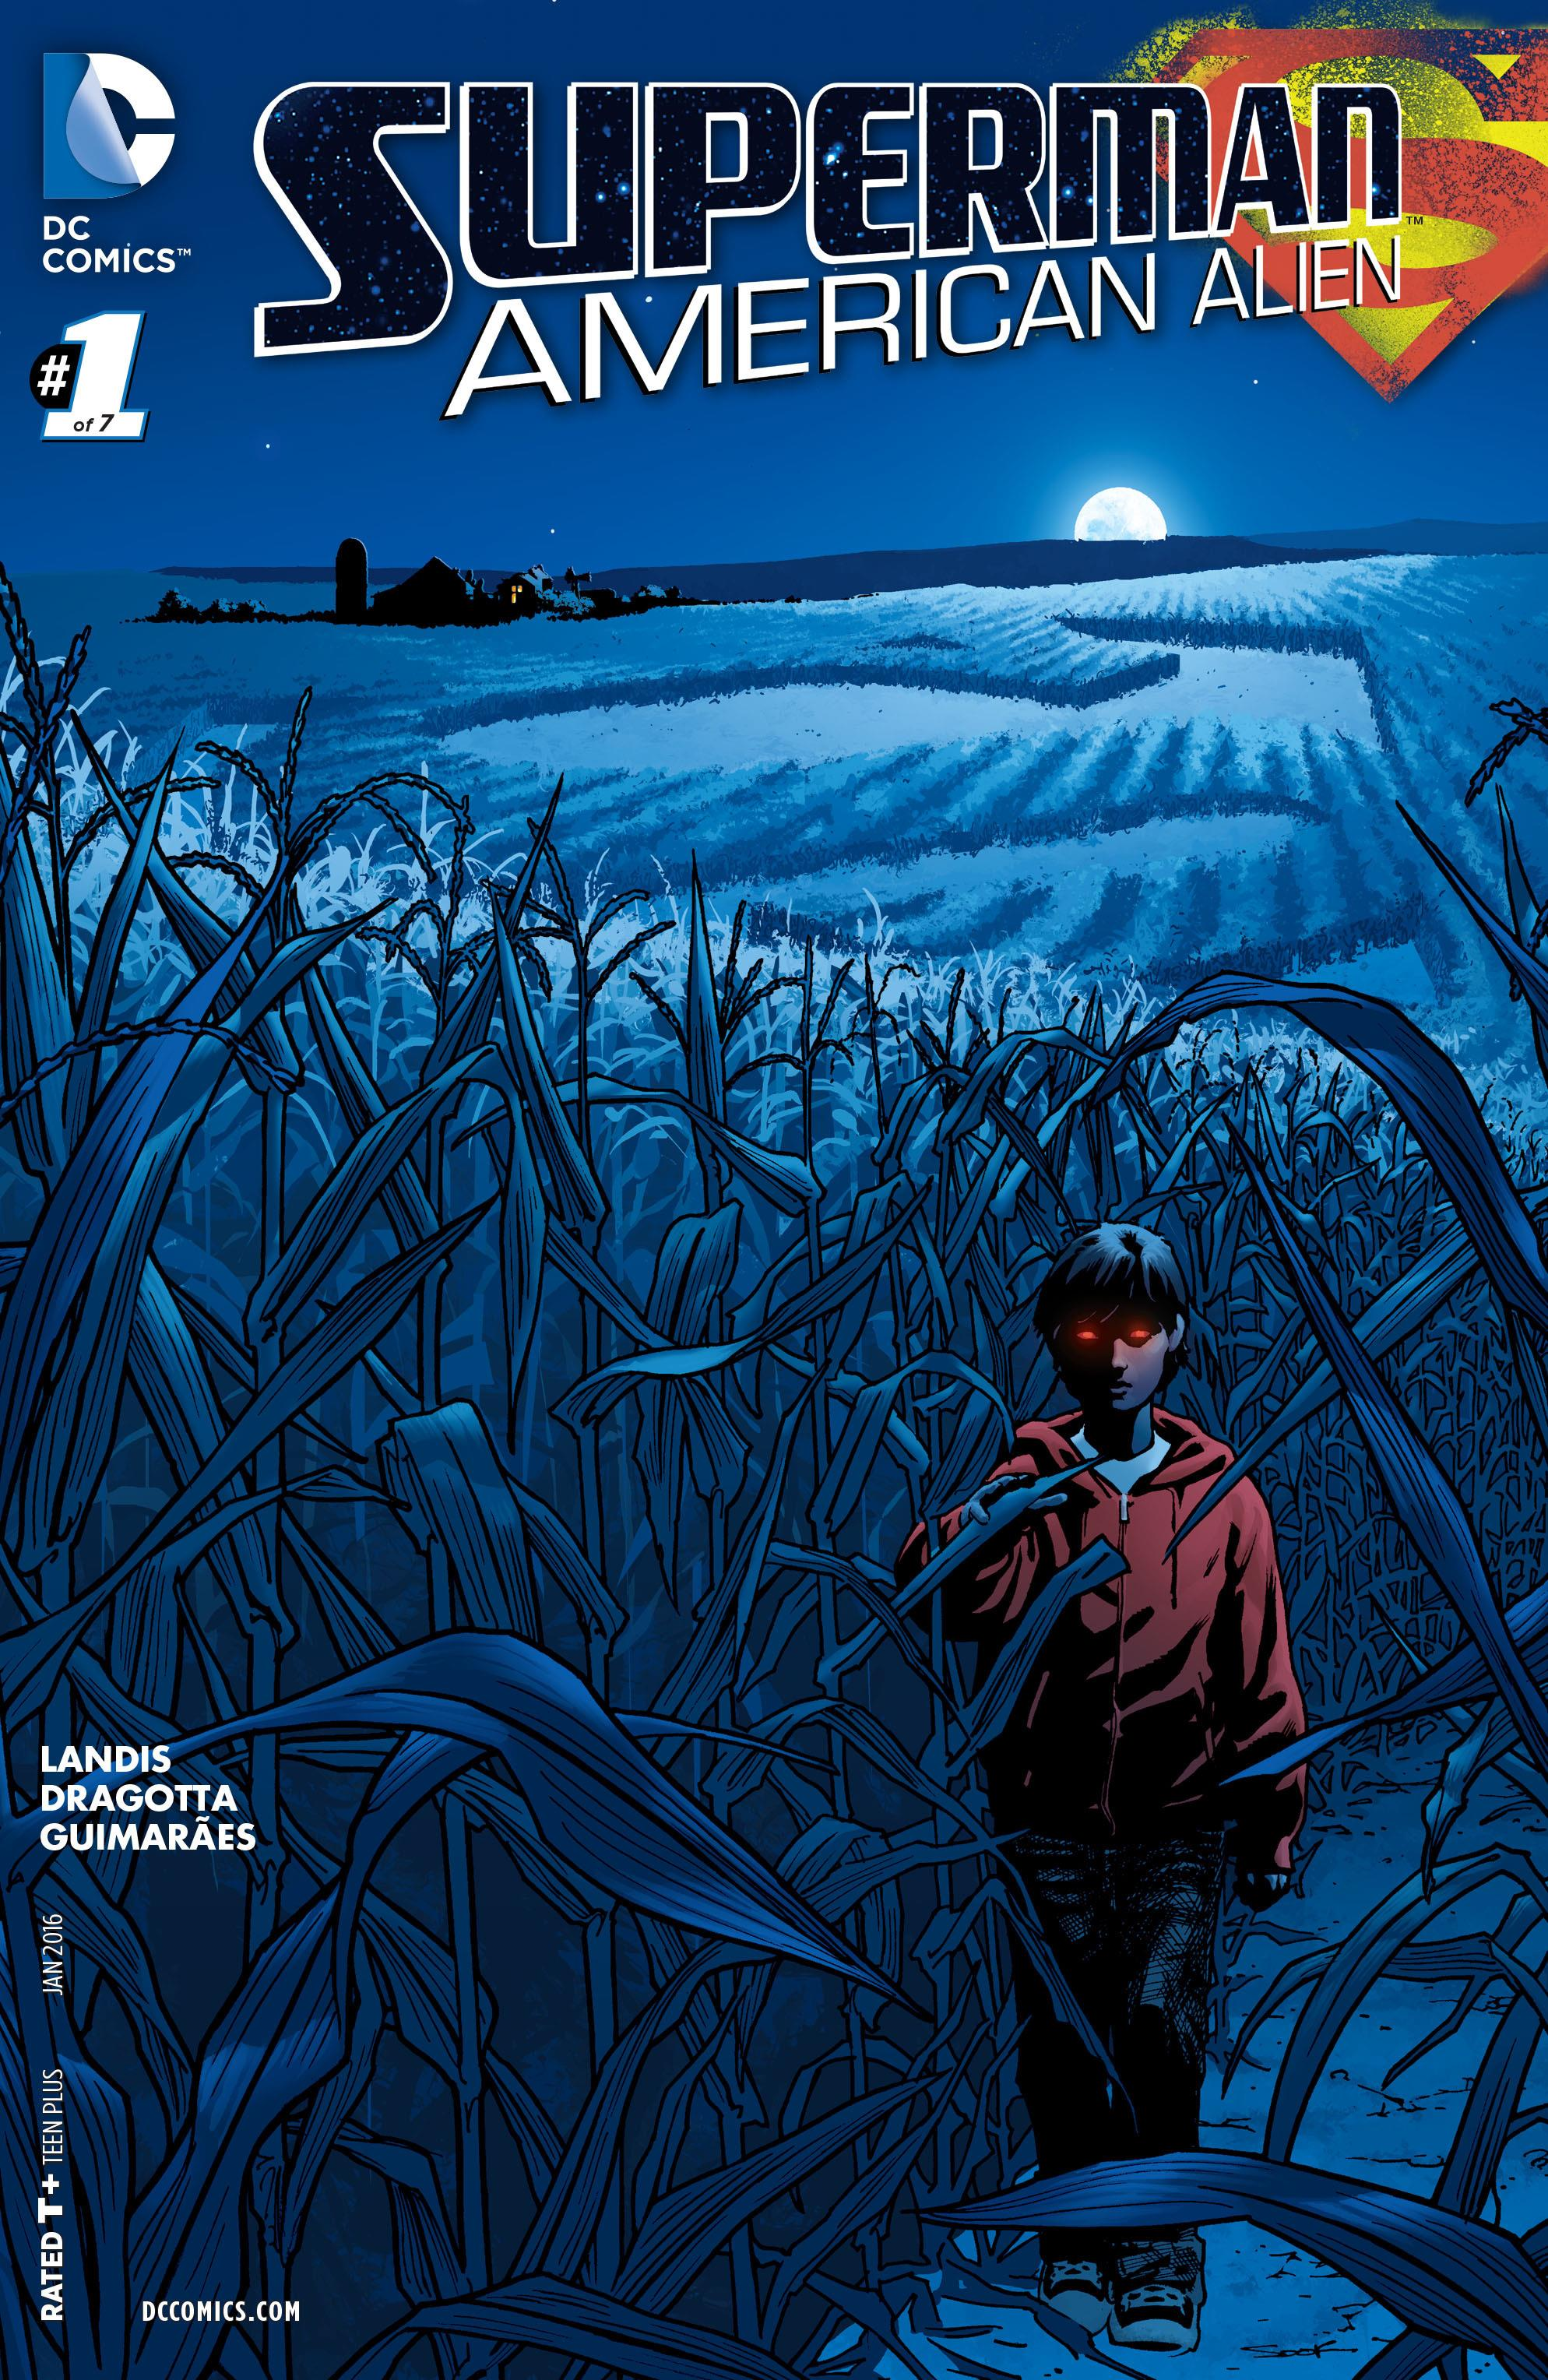 COMIC REVIEW: Superman: American Alien #1 - Dove